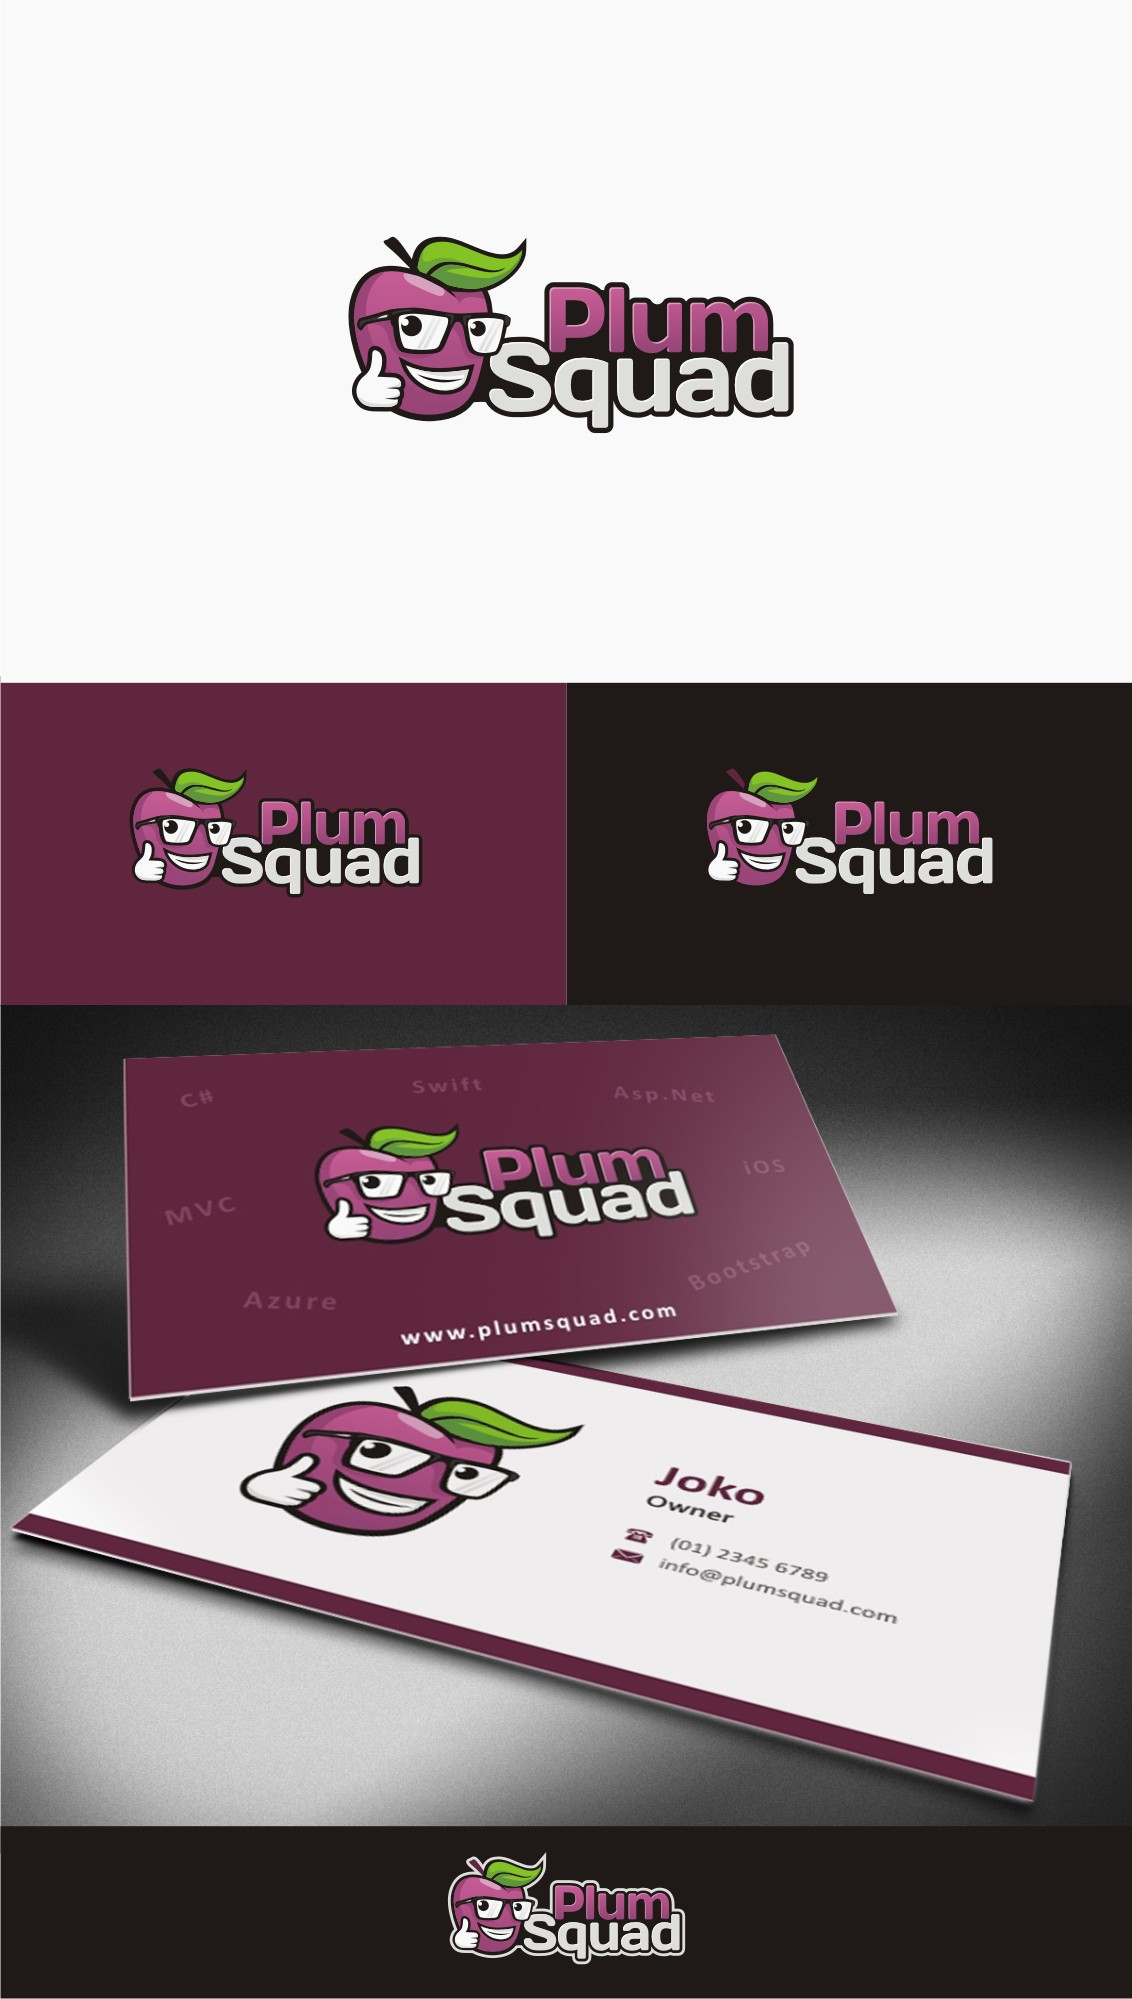 Create a logo for a web development startup that is Plum good.